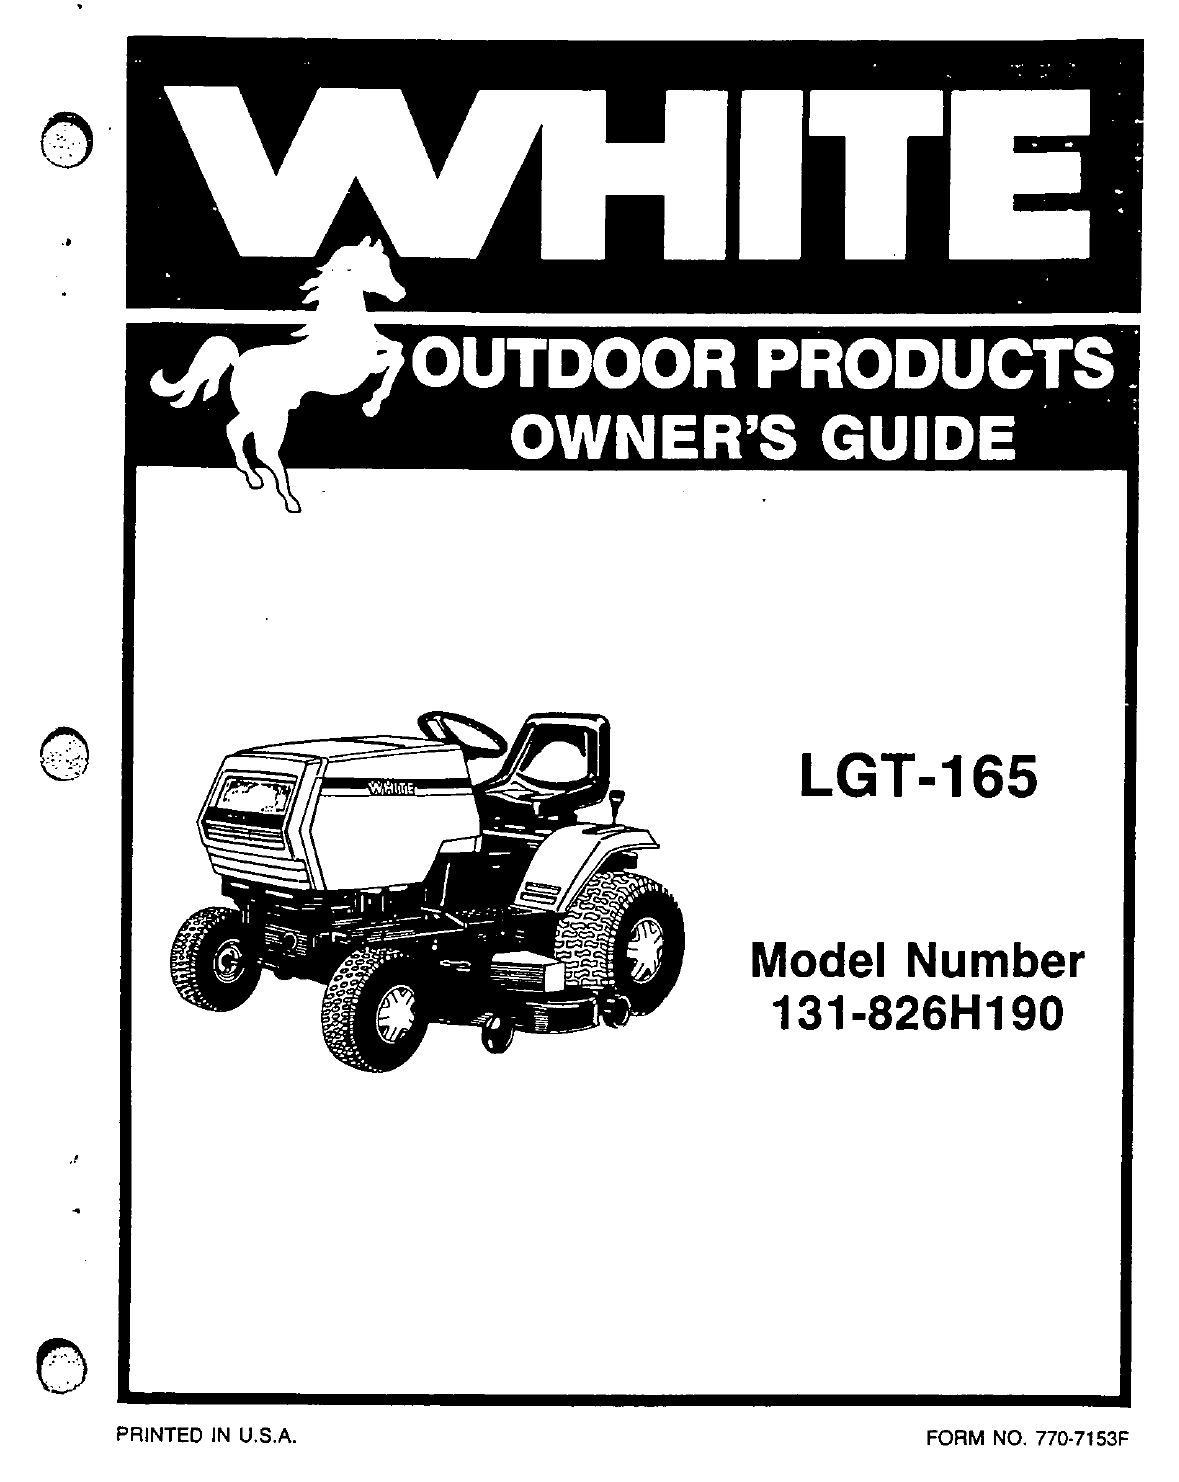 9e773657 6bfb 4abb b495 01ab459dd8bd bg1 white lawn mower 131 826h190 user guide manualsonline com Toto LT542G at bakdesigns.co